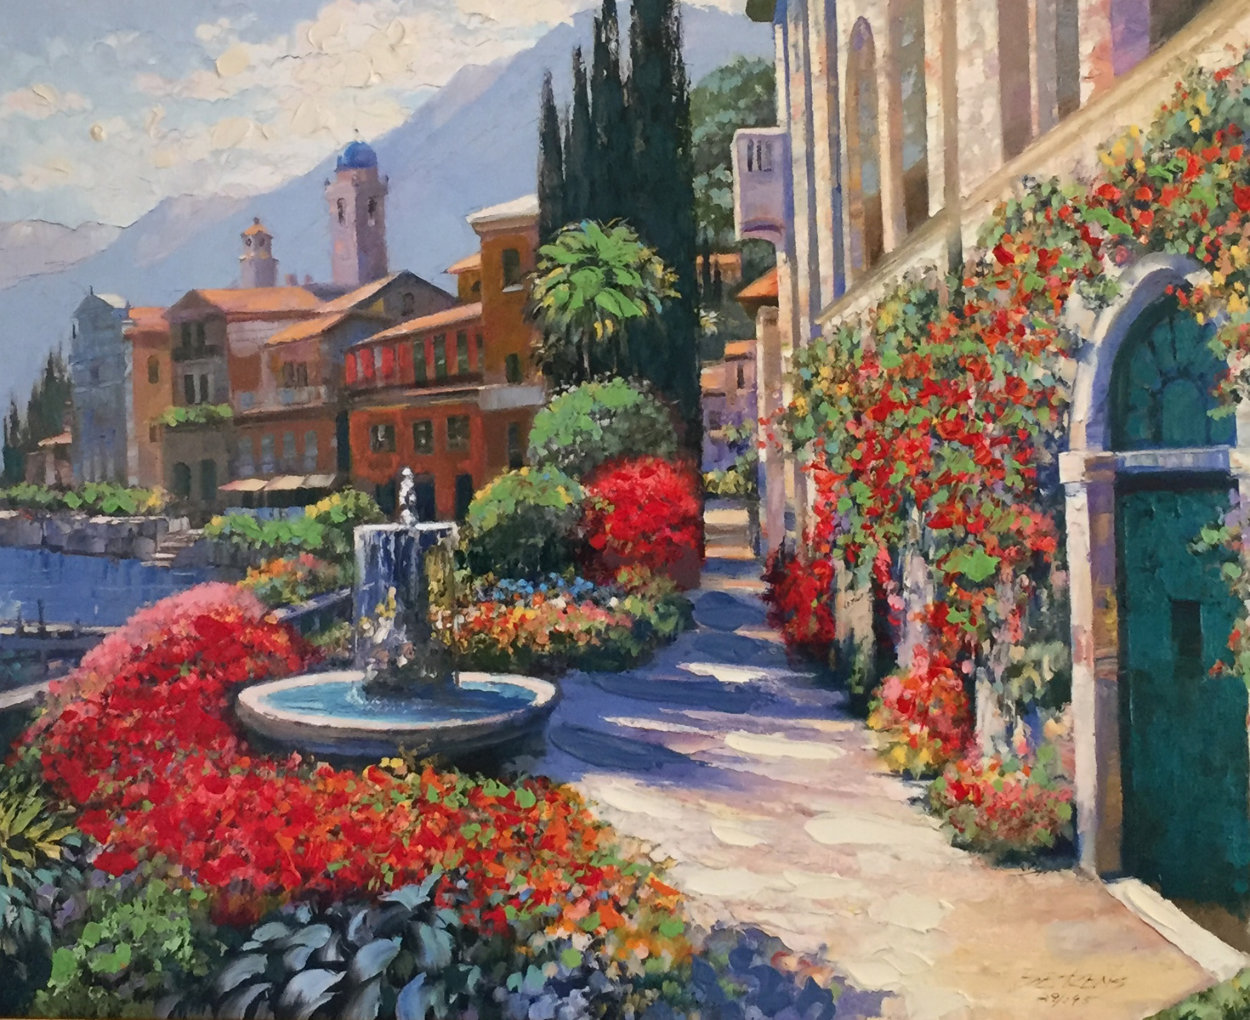 Along Lake Como #2 2007 Embellished Limited Edition Print by Howard Behrens